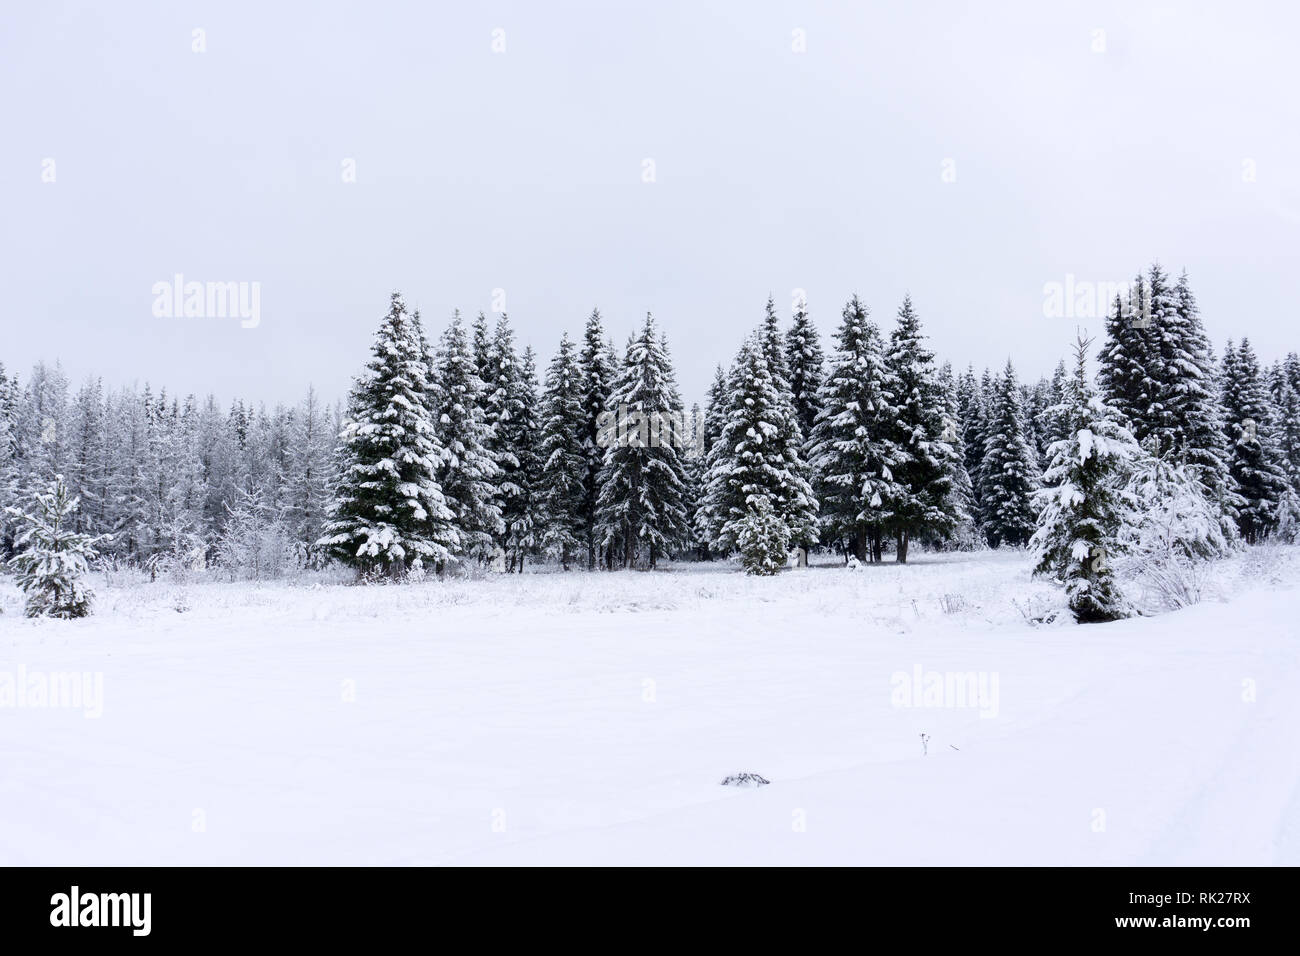 Vivid white spruces on a frosty day. Location Carpathian national park, Ukraine, Europe. Ski resort. Exotic wintry scene. Attractive winter wallpaper. - Stock Image